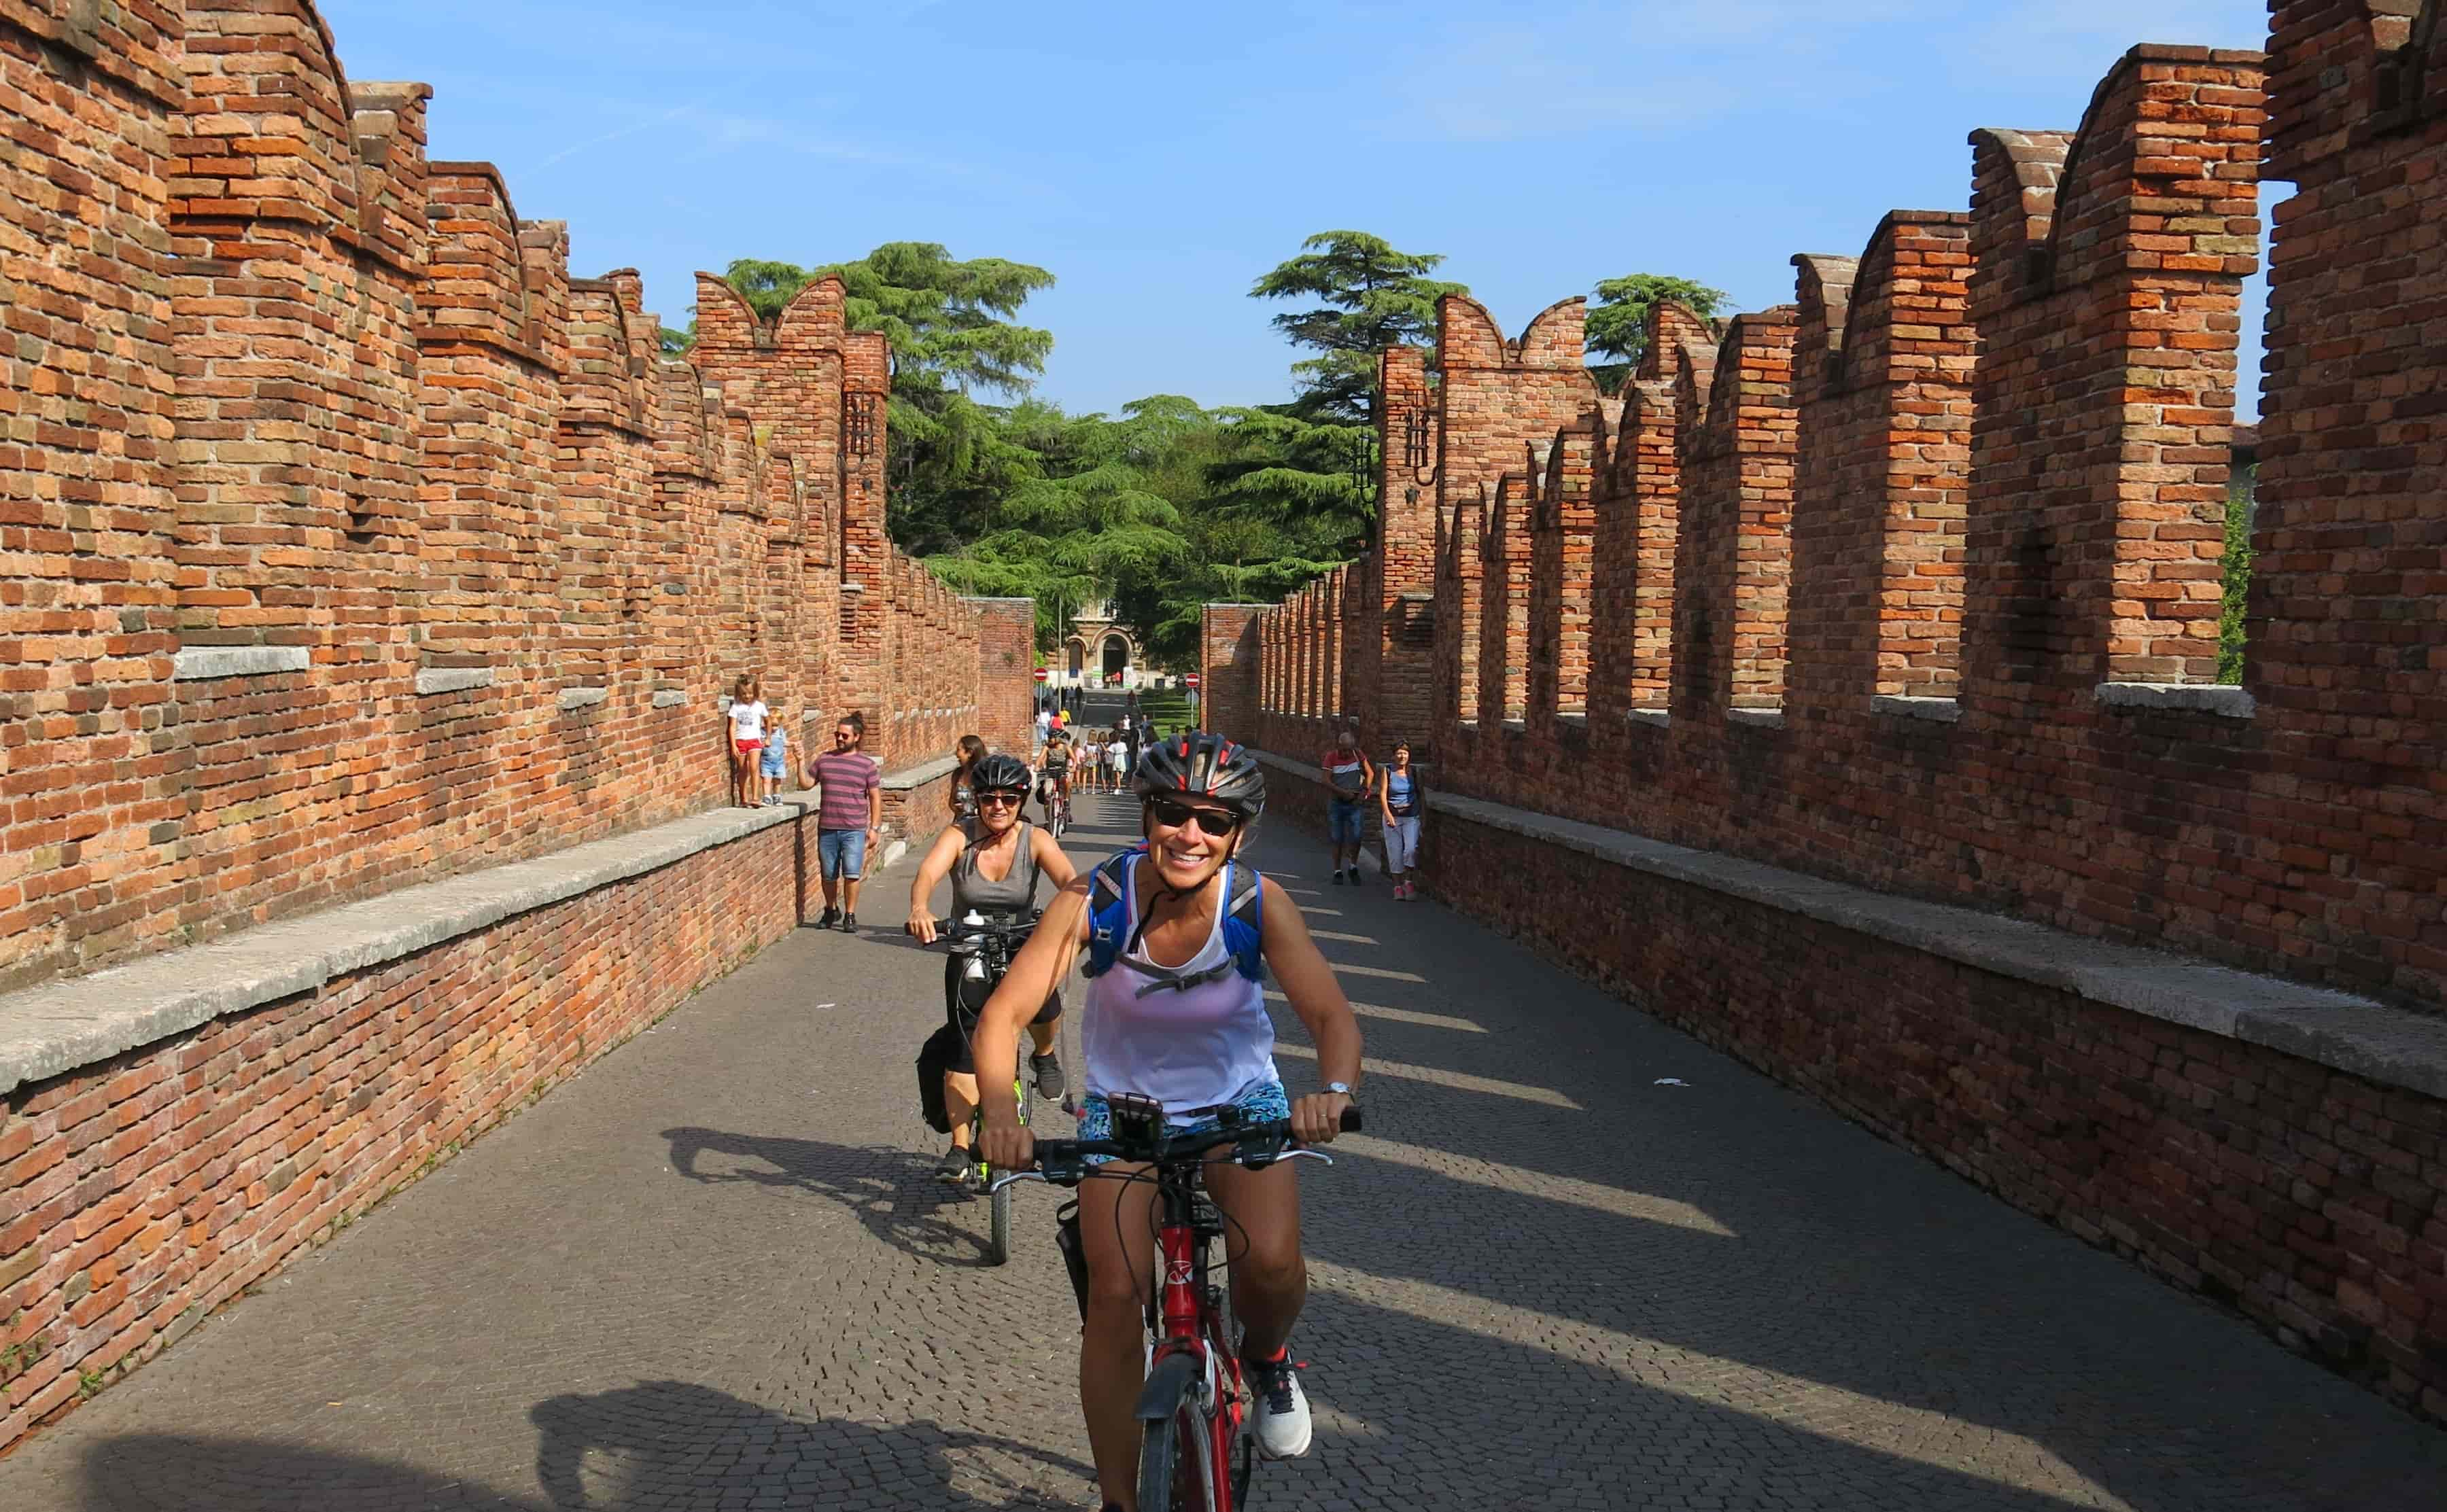 5 Reasons Why You Should Go On A Bike Tour